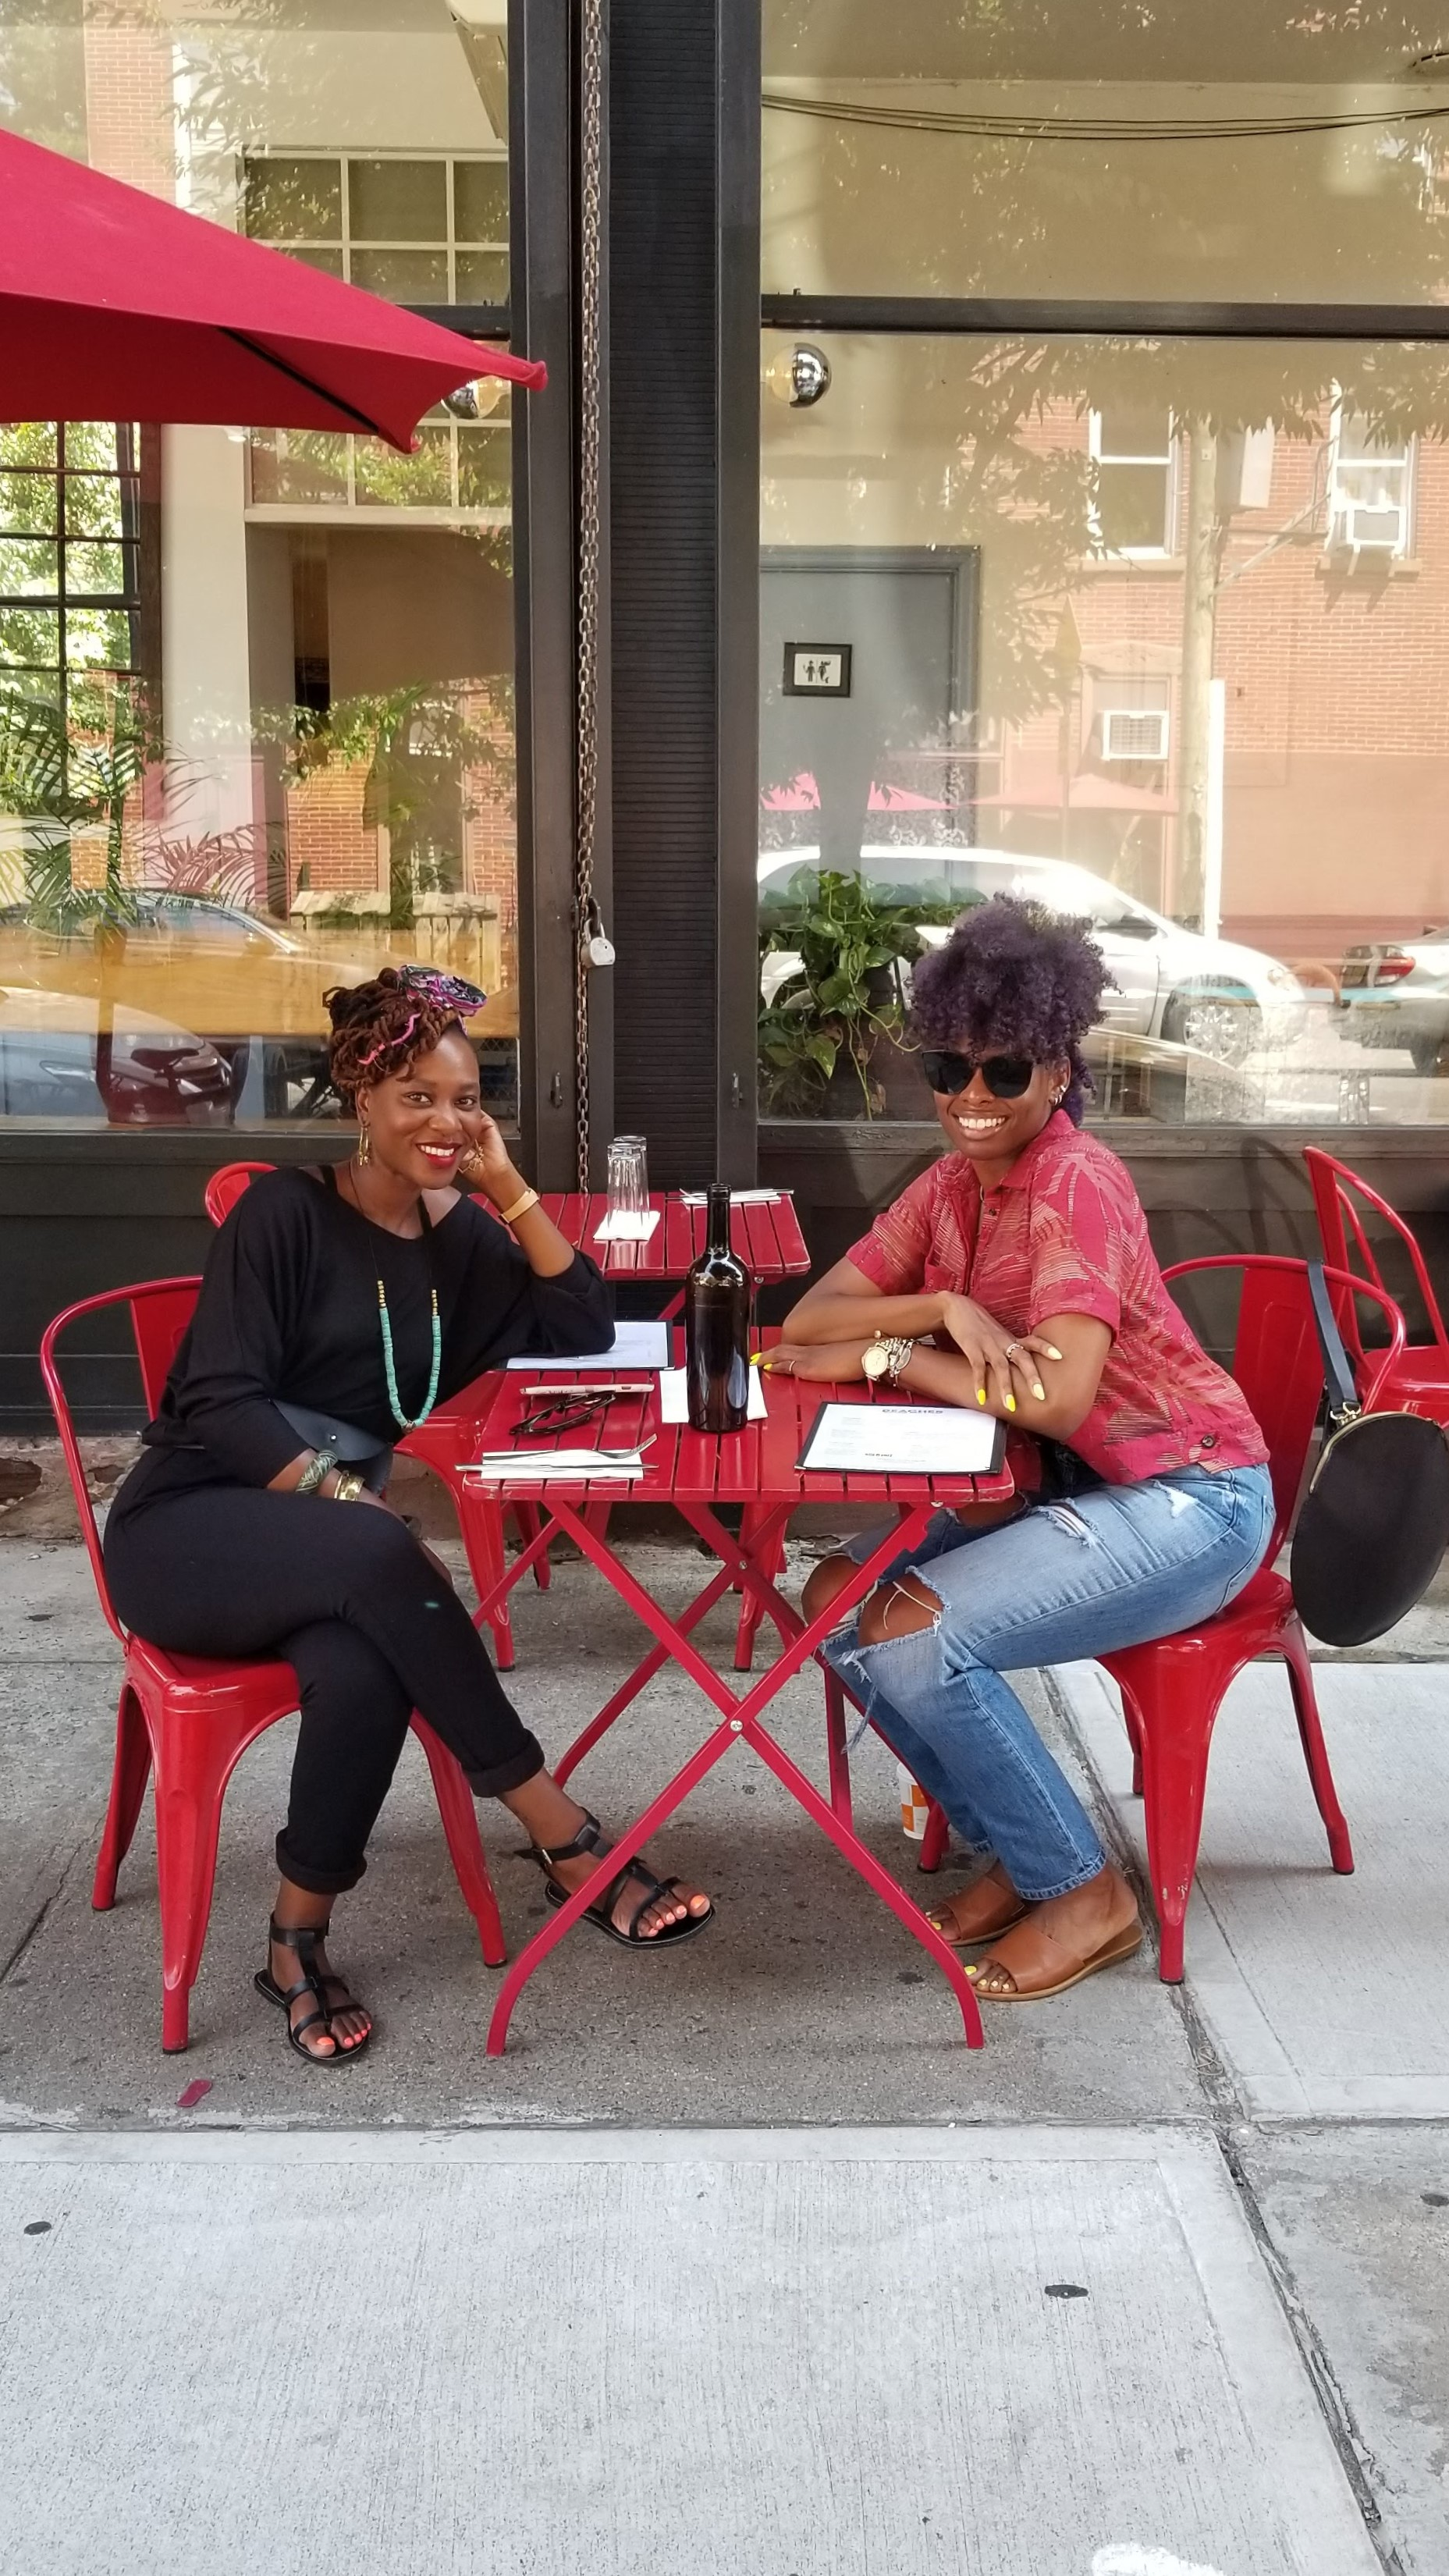 Shavonda and me. Pic taken by the sweet owner of Peaches, Shrimp & Crab